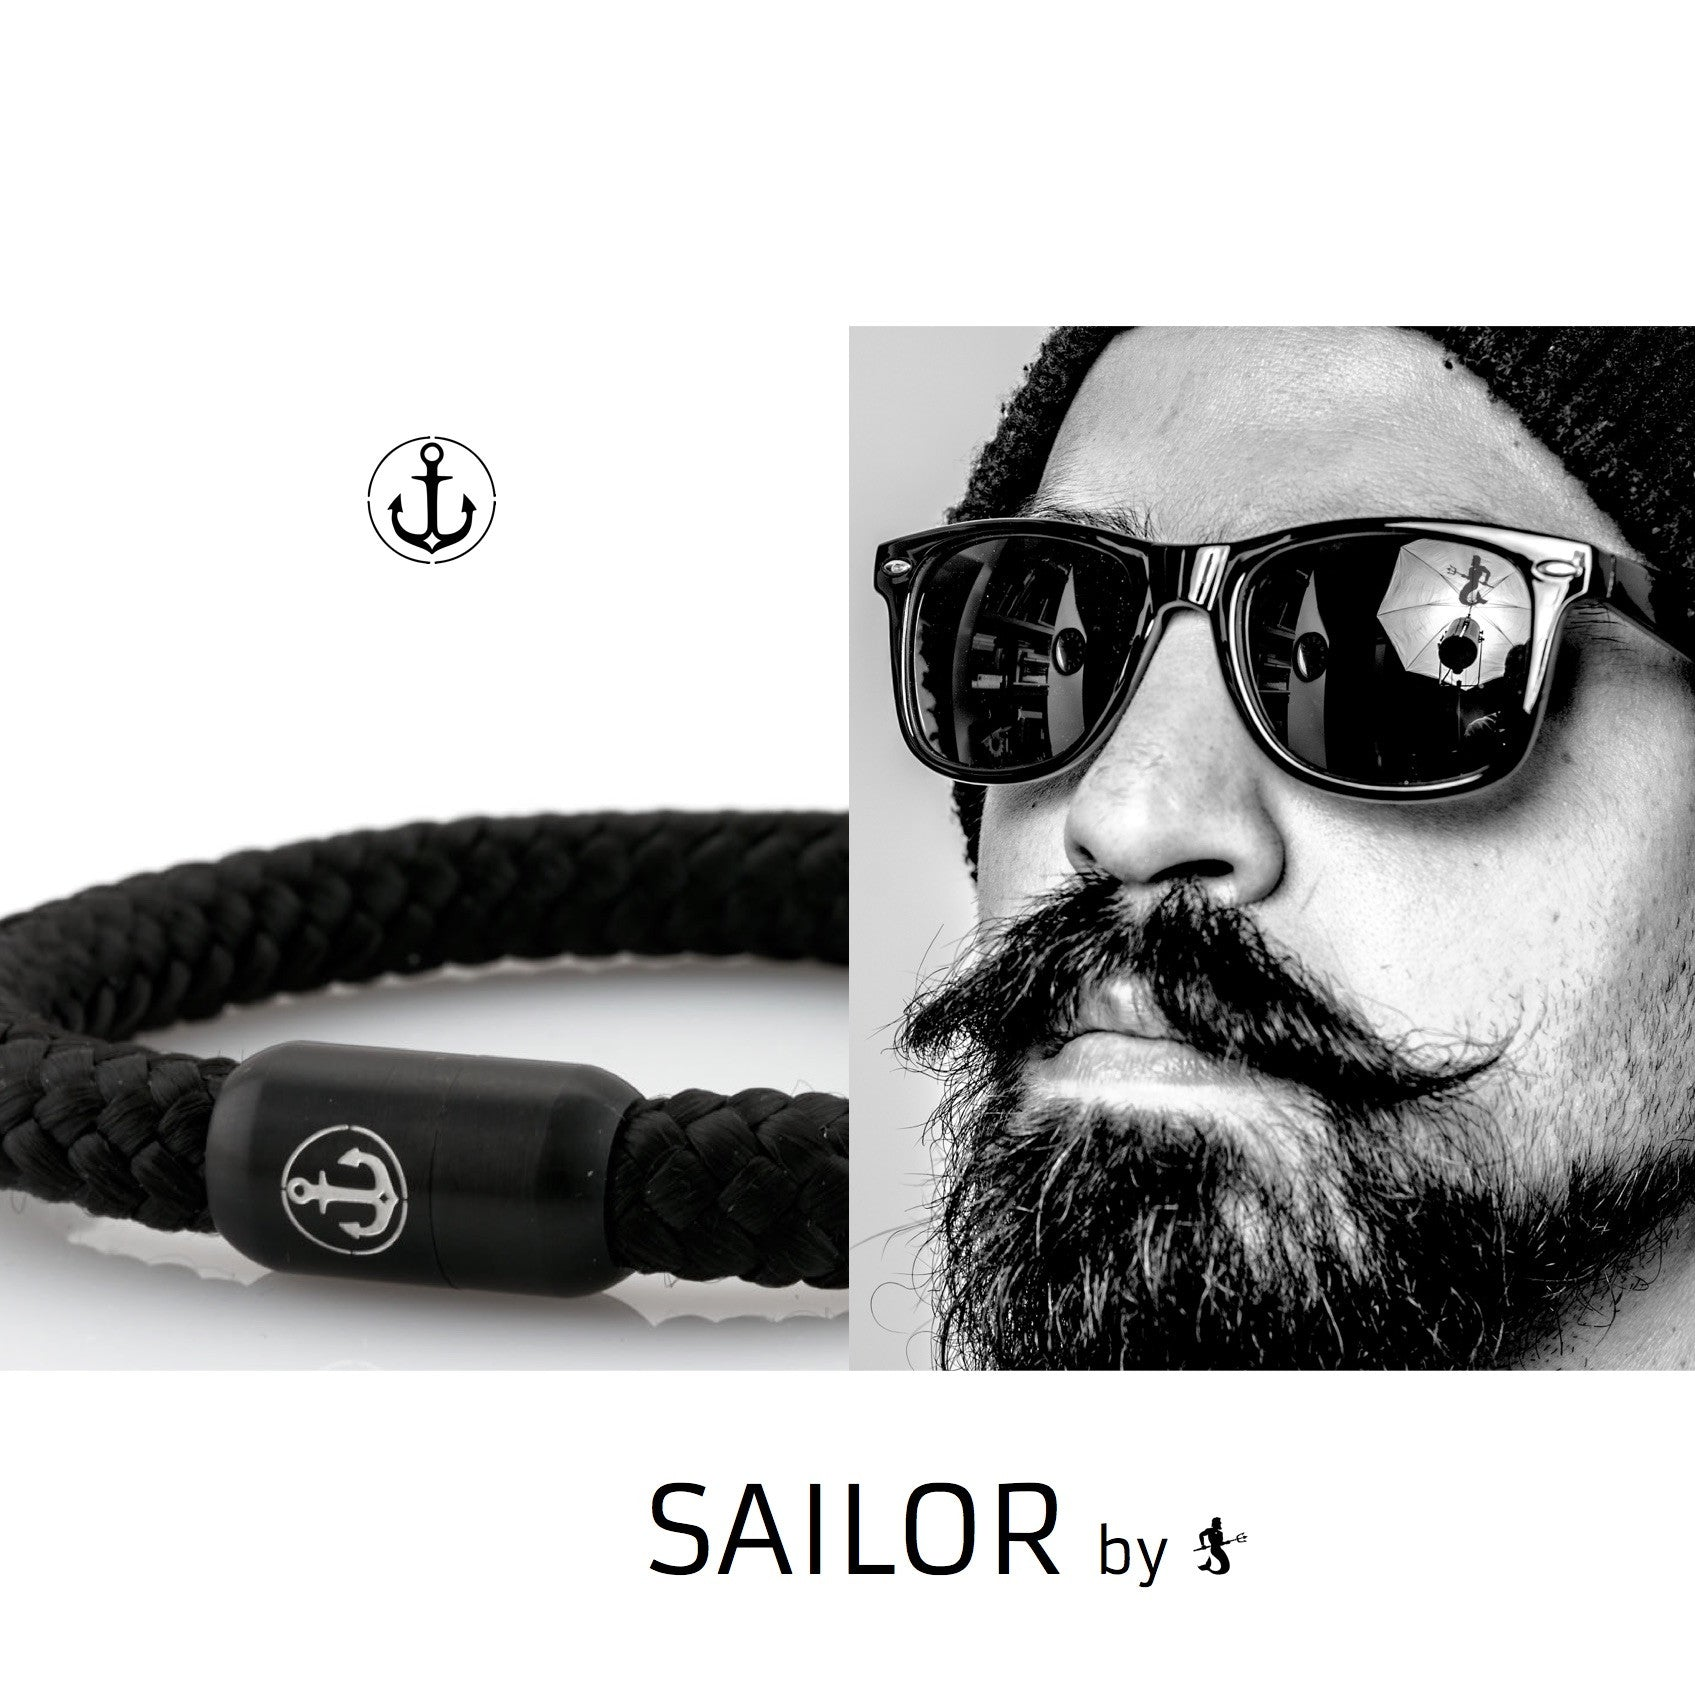 SAILOR Black Anchor is gone with the wind...